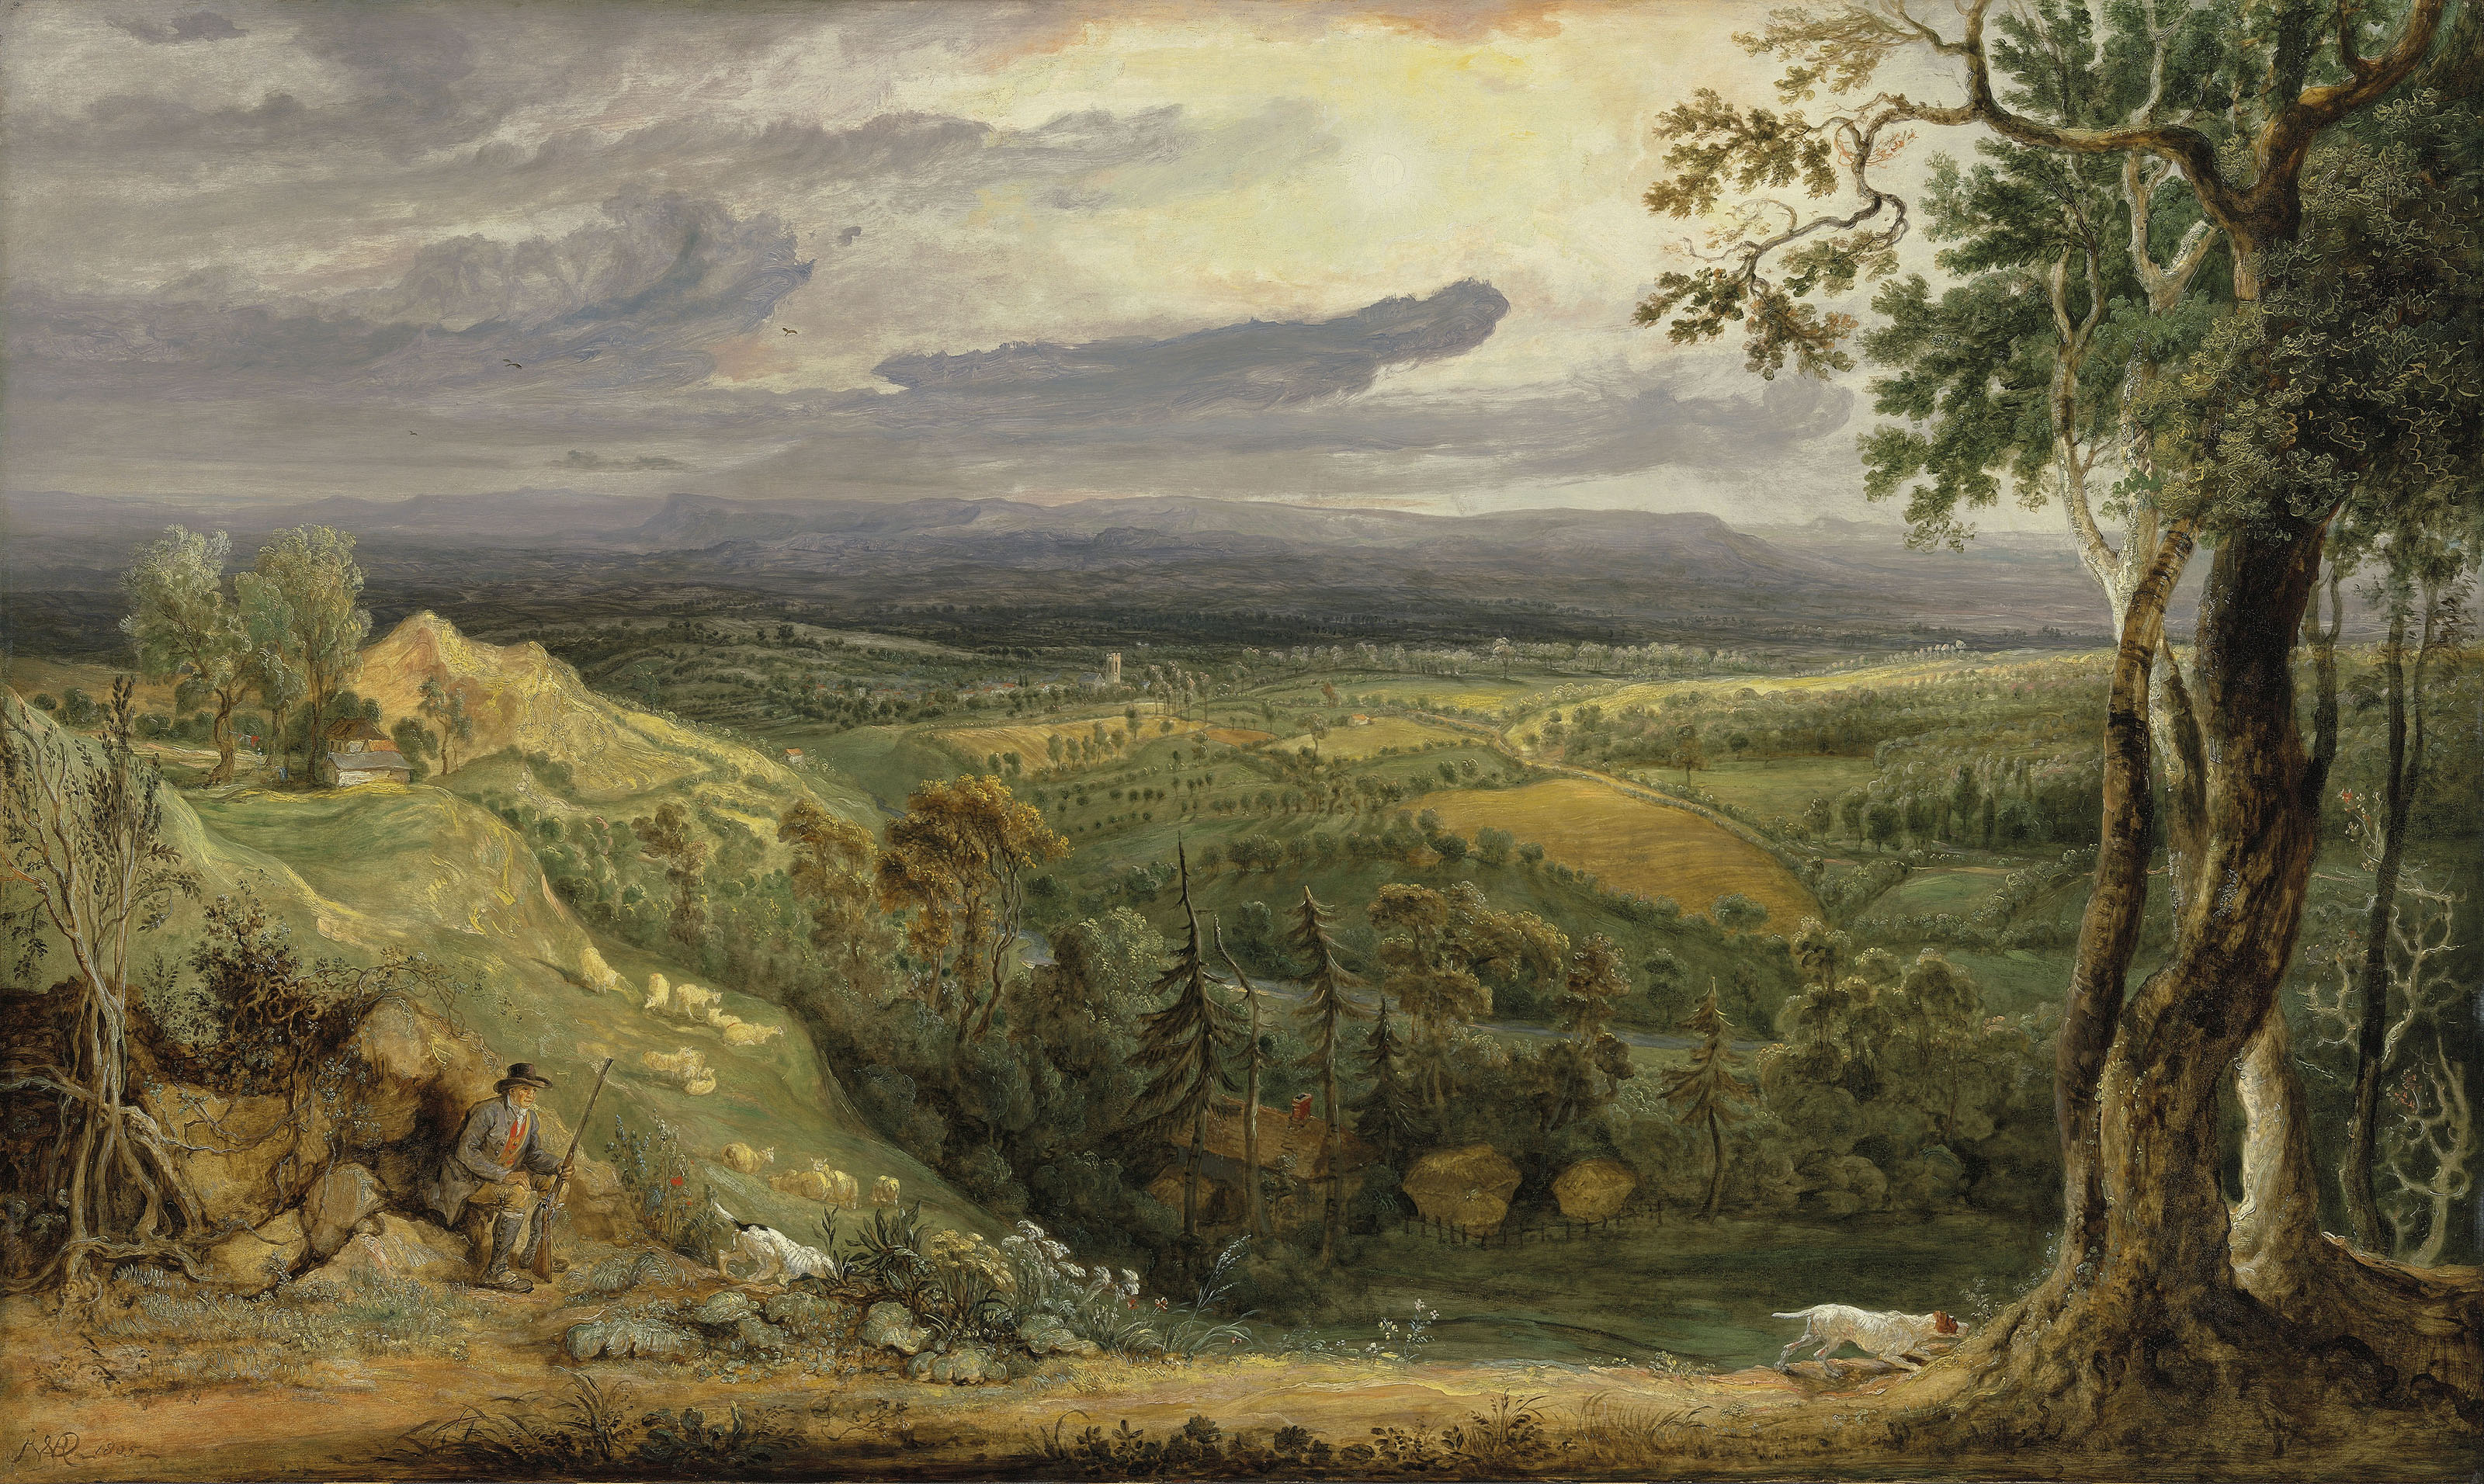 A view of Somersetshire from Fitzhead, the Seat of Lord Somerville